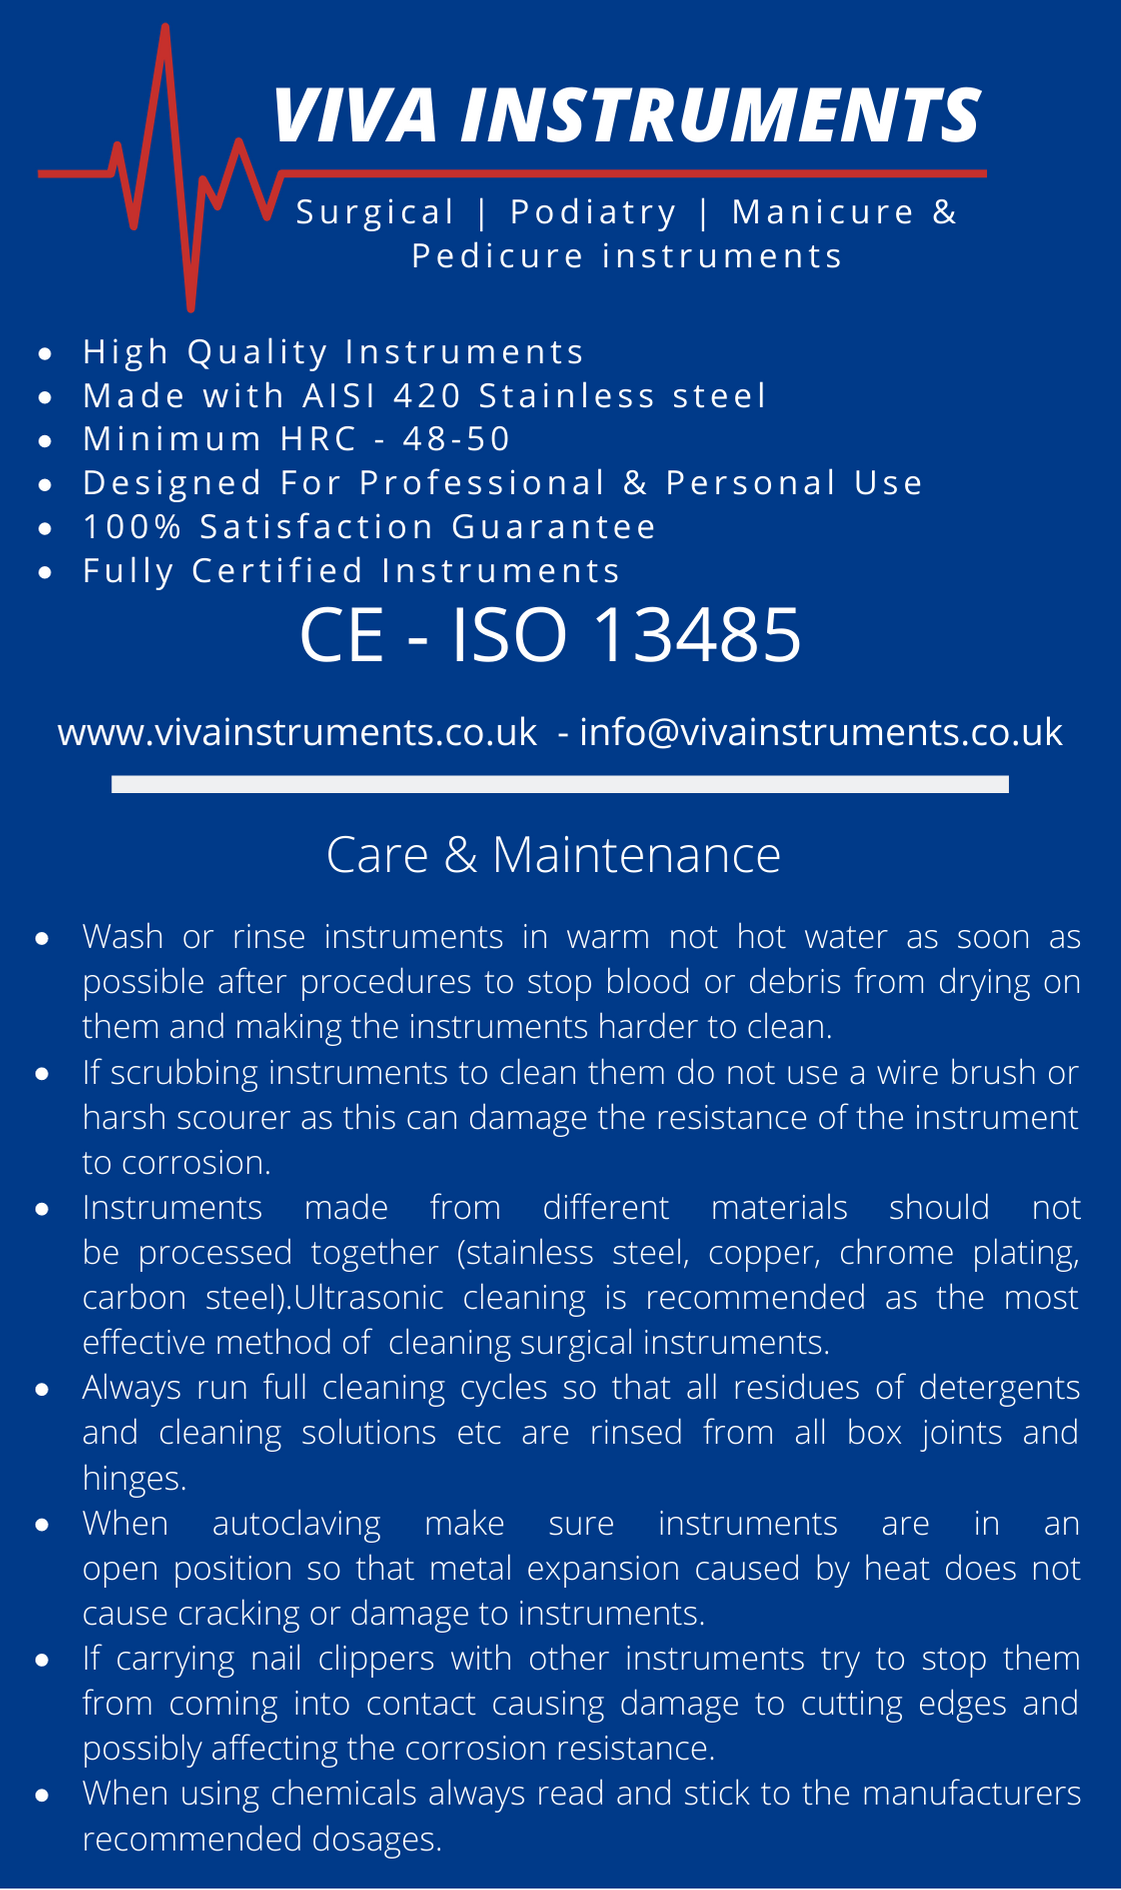 Cleaning & Maintenance of surgical instruments